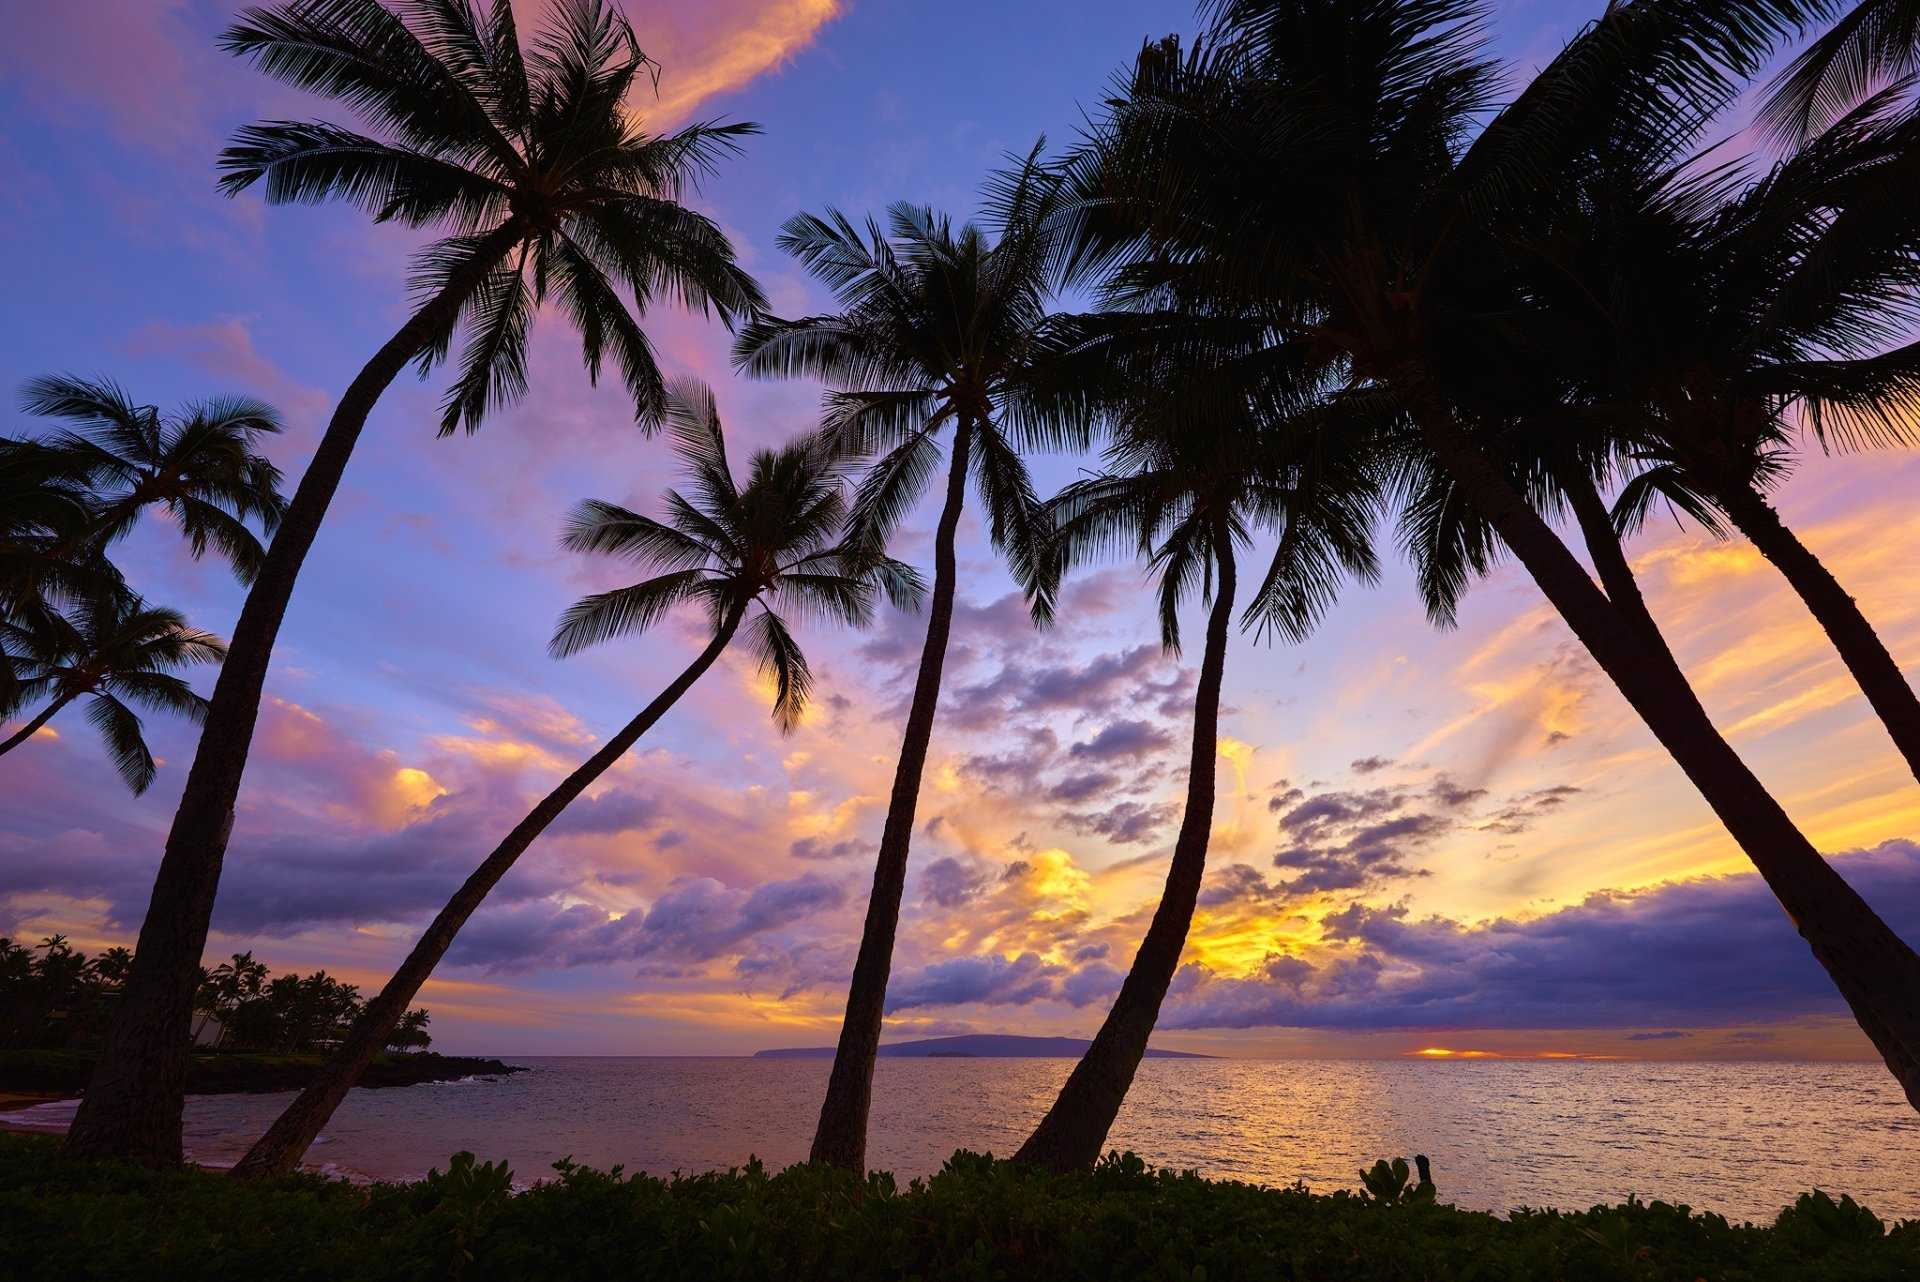 Palm Trees In The Sunset HD Wallpaper